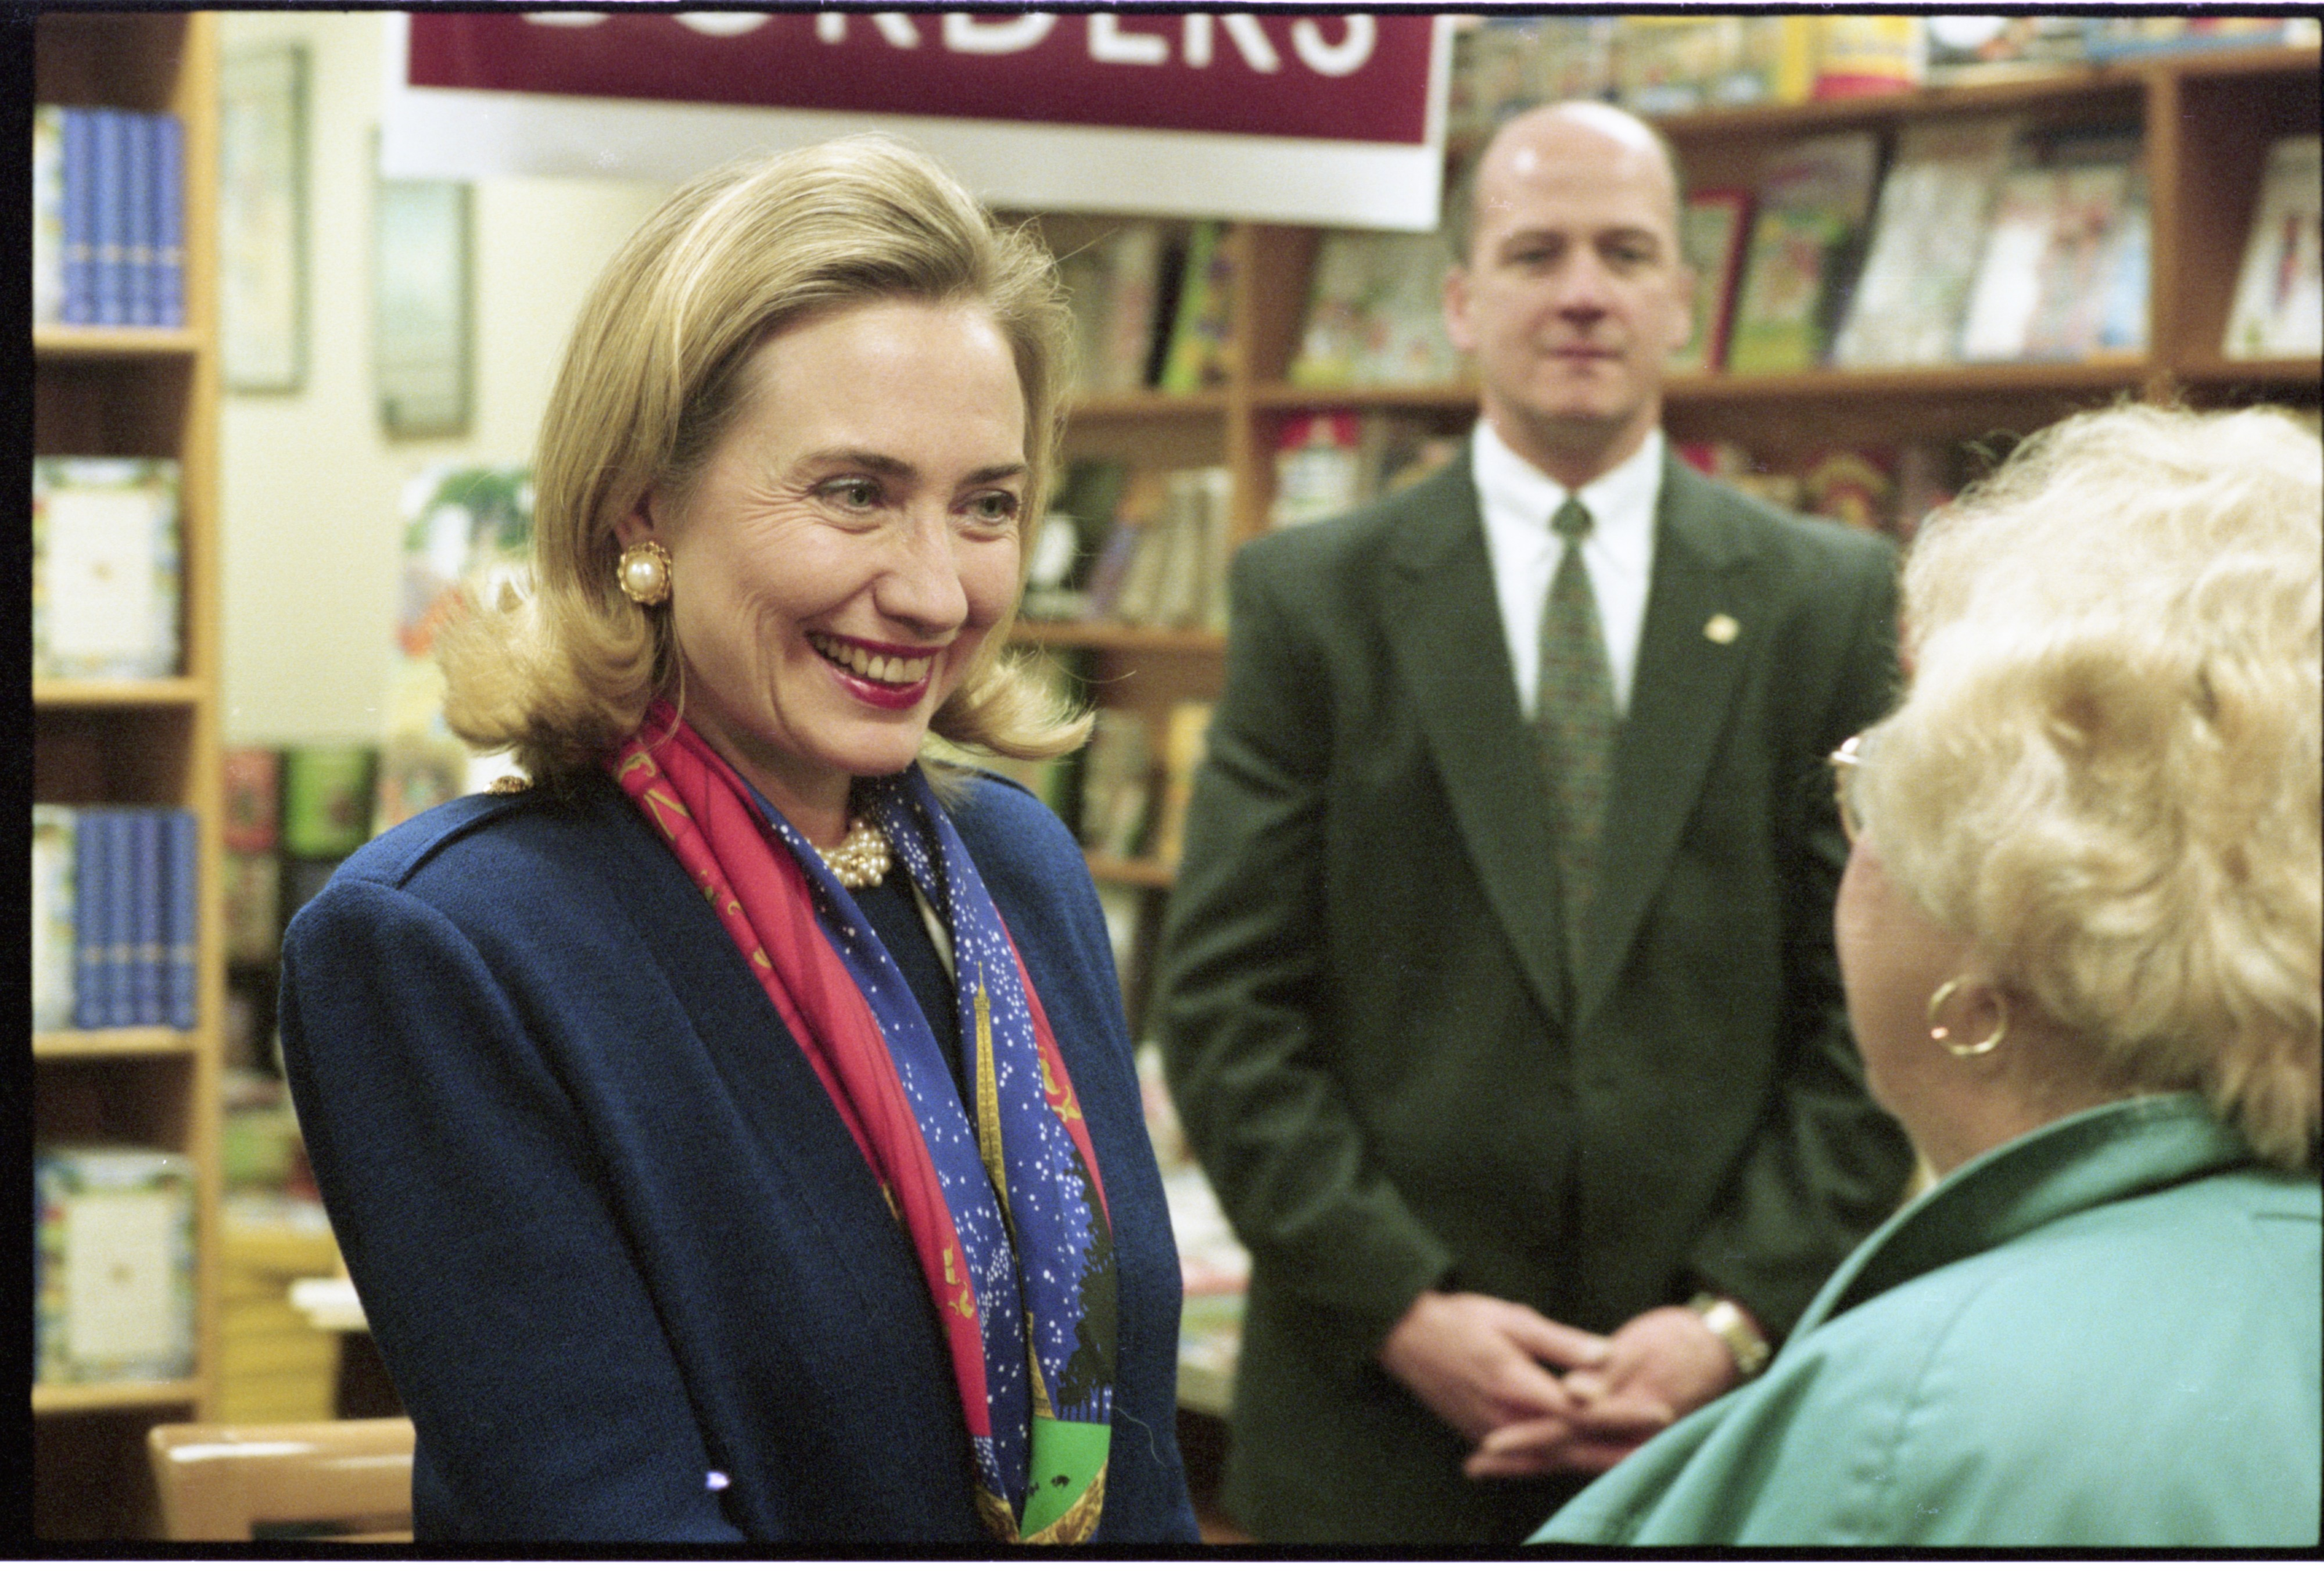 Hillary Rodham Clinton Promotes Her New Book At Borders Bookstore, January 1996 image